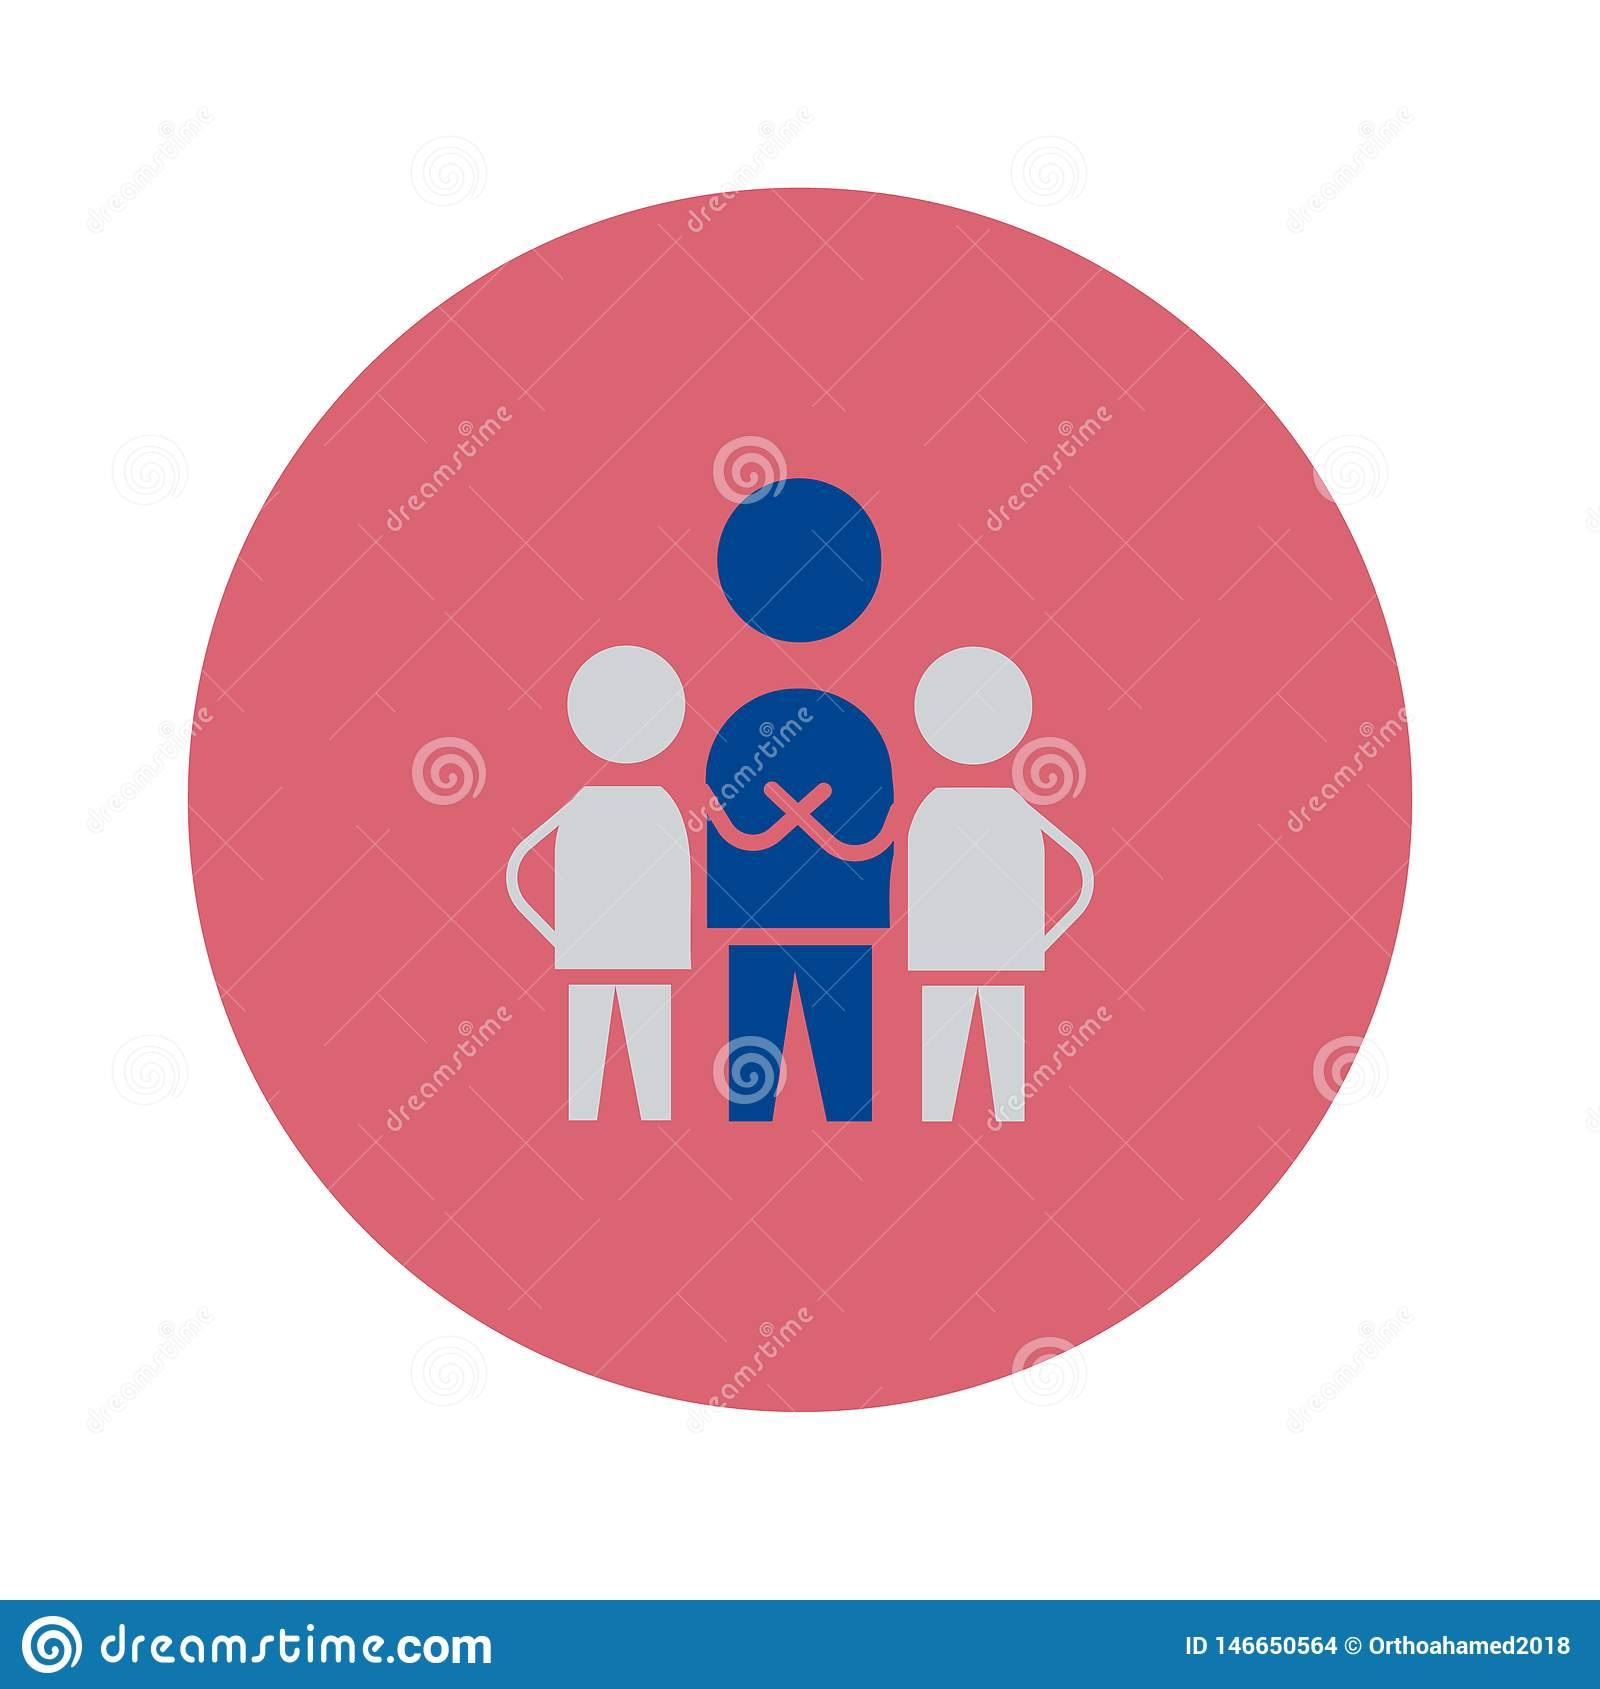 Teamwork icon. vector sign symbol illustration